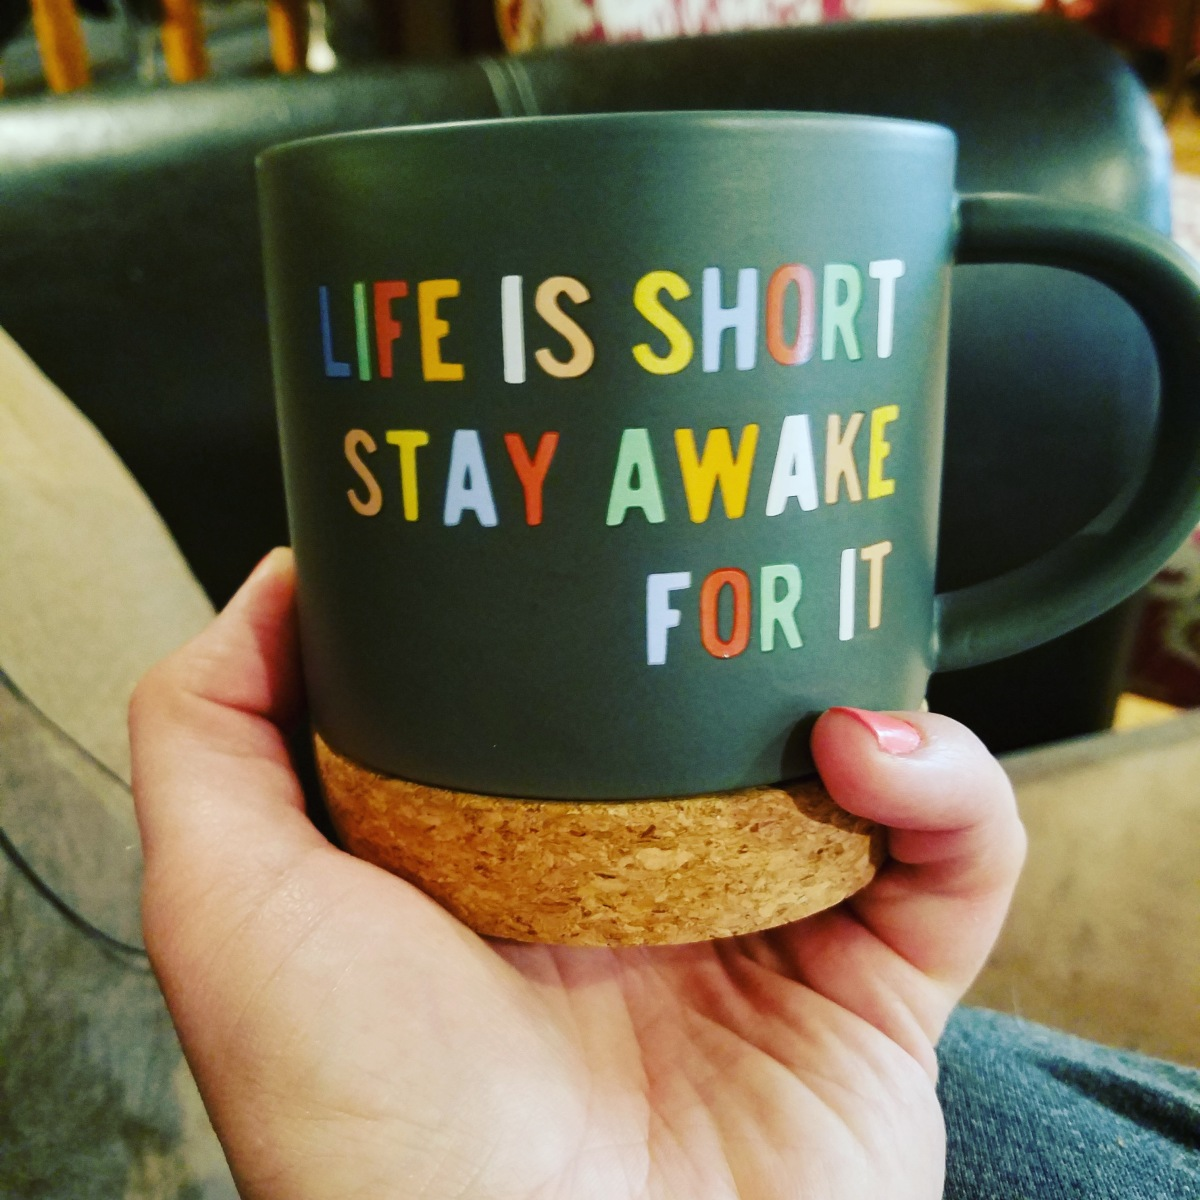 Diagnosis: Life is Short, Stay Awake forIt.